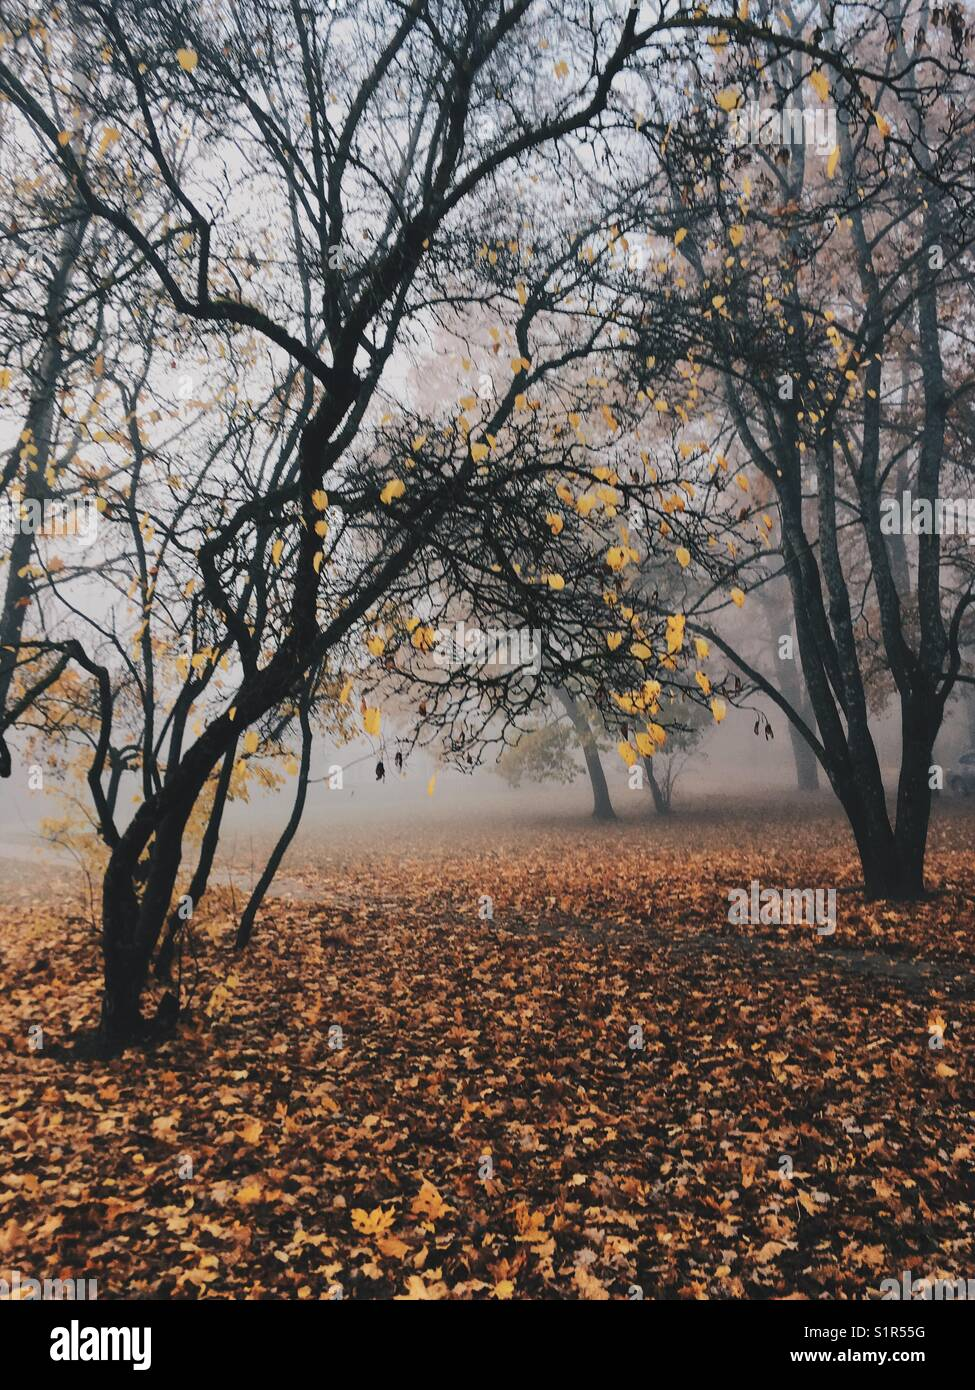 Misterious landscapic scene with trees in autumns fog. - Stock Image